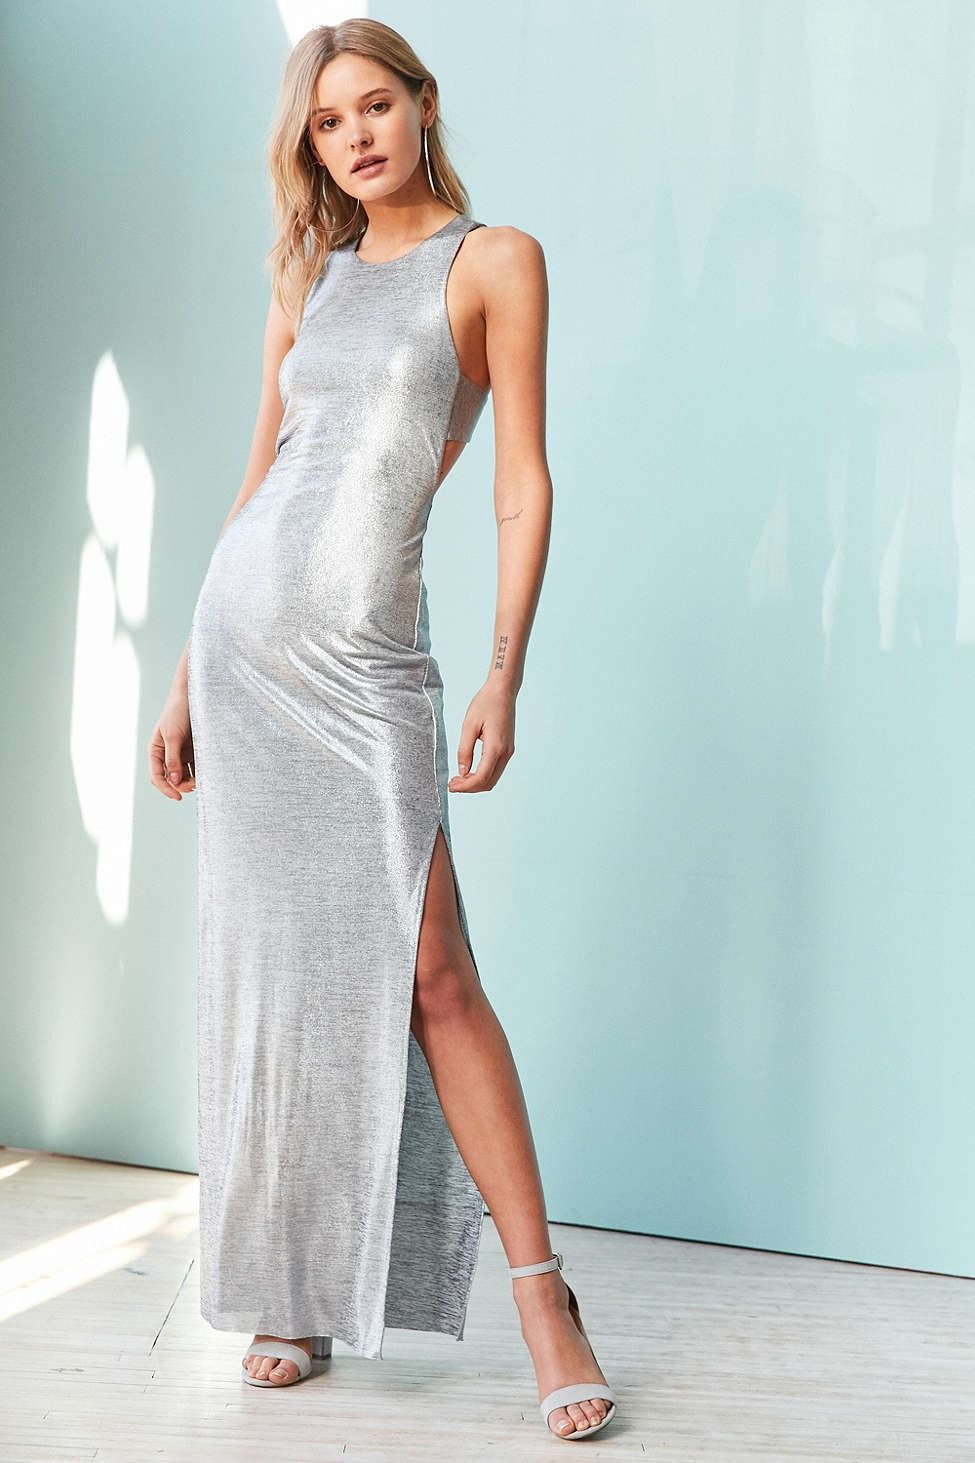 Silence Noise Stingray Metallic Maxi Dress - Urban Outfitters | New ...